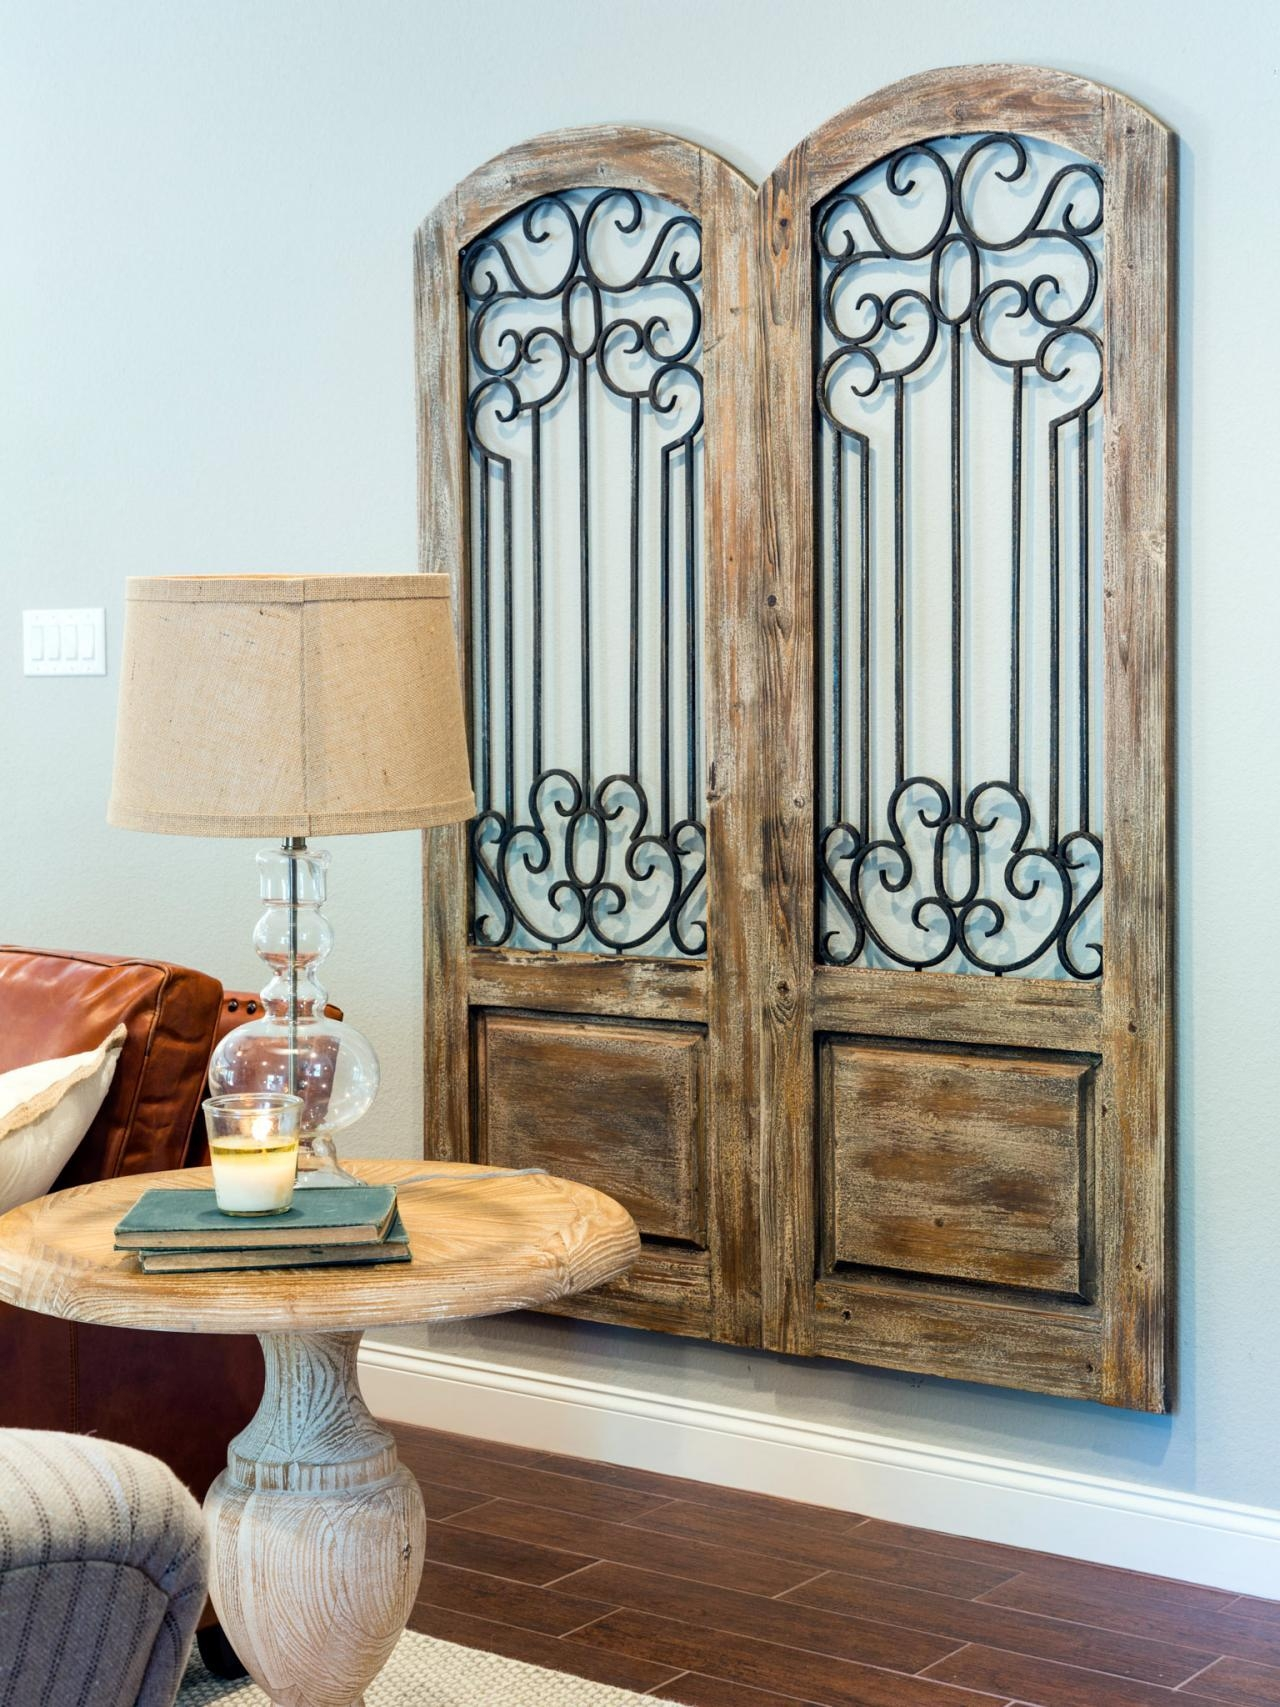 Garden Gate Wall Decor – Home Design And Decorating With Regard To Metal Gate Wall Art (View 7 of 20)